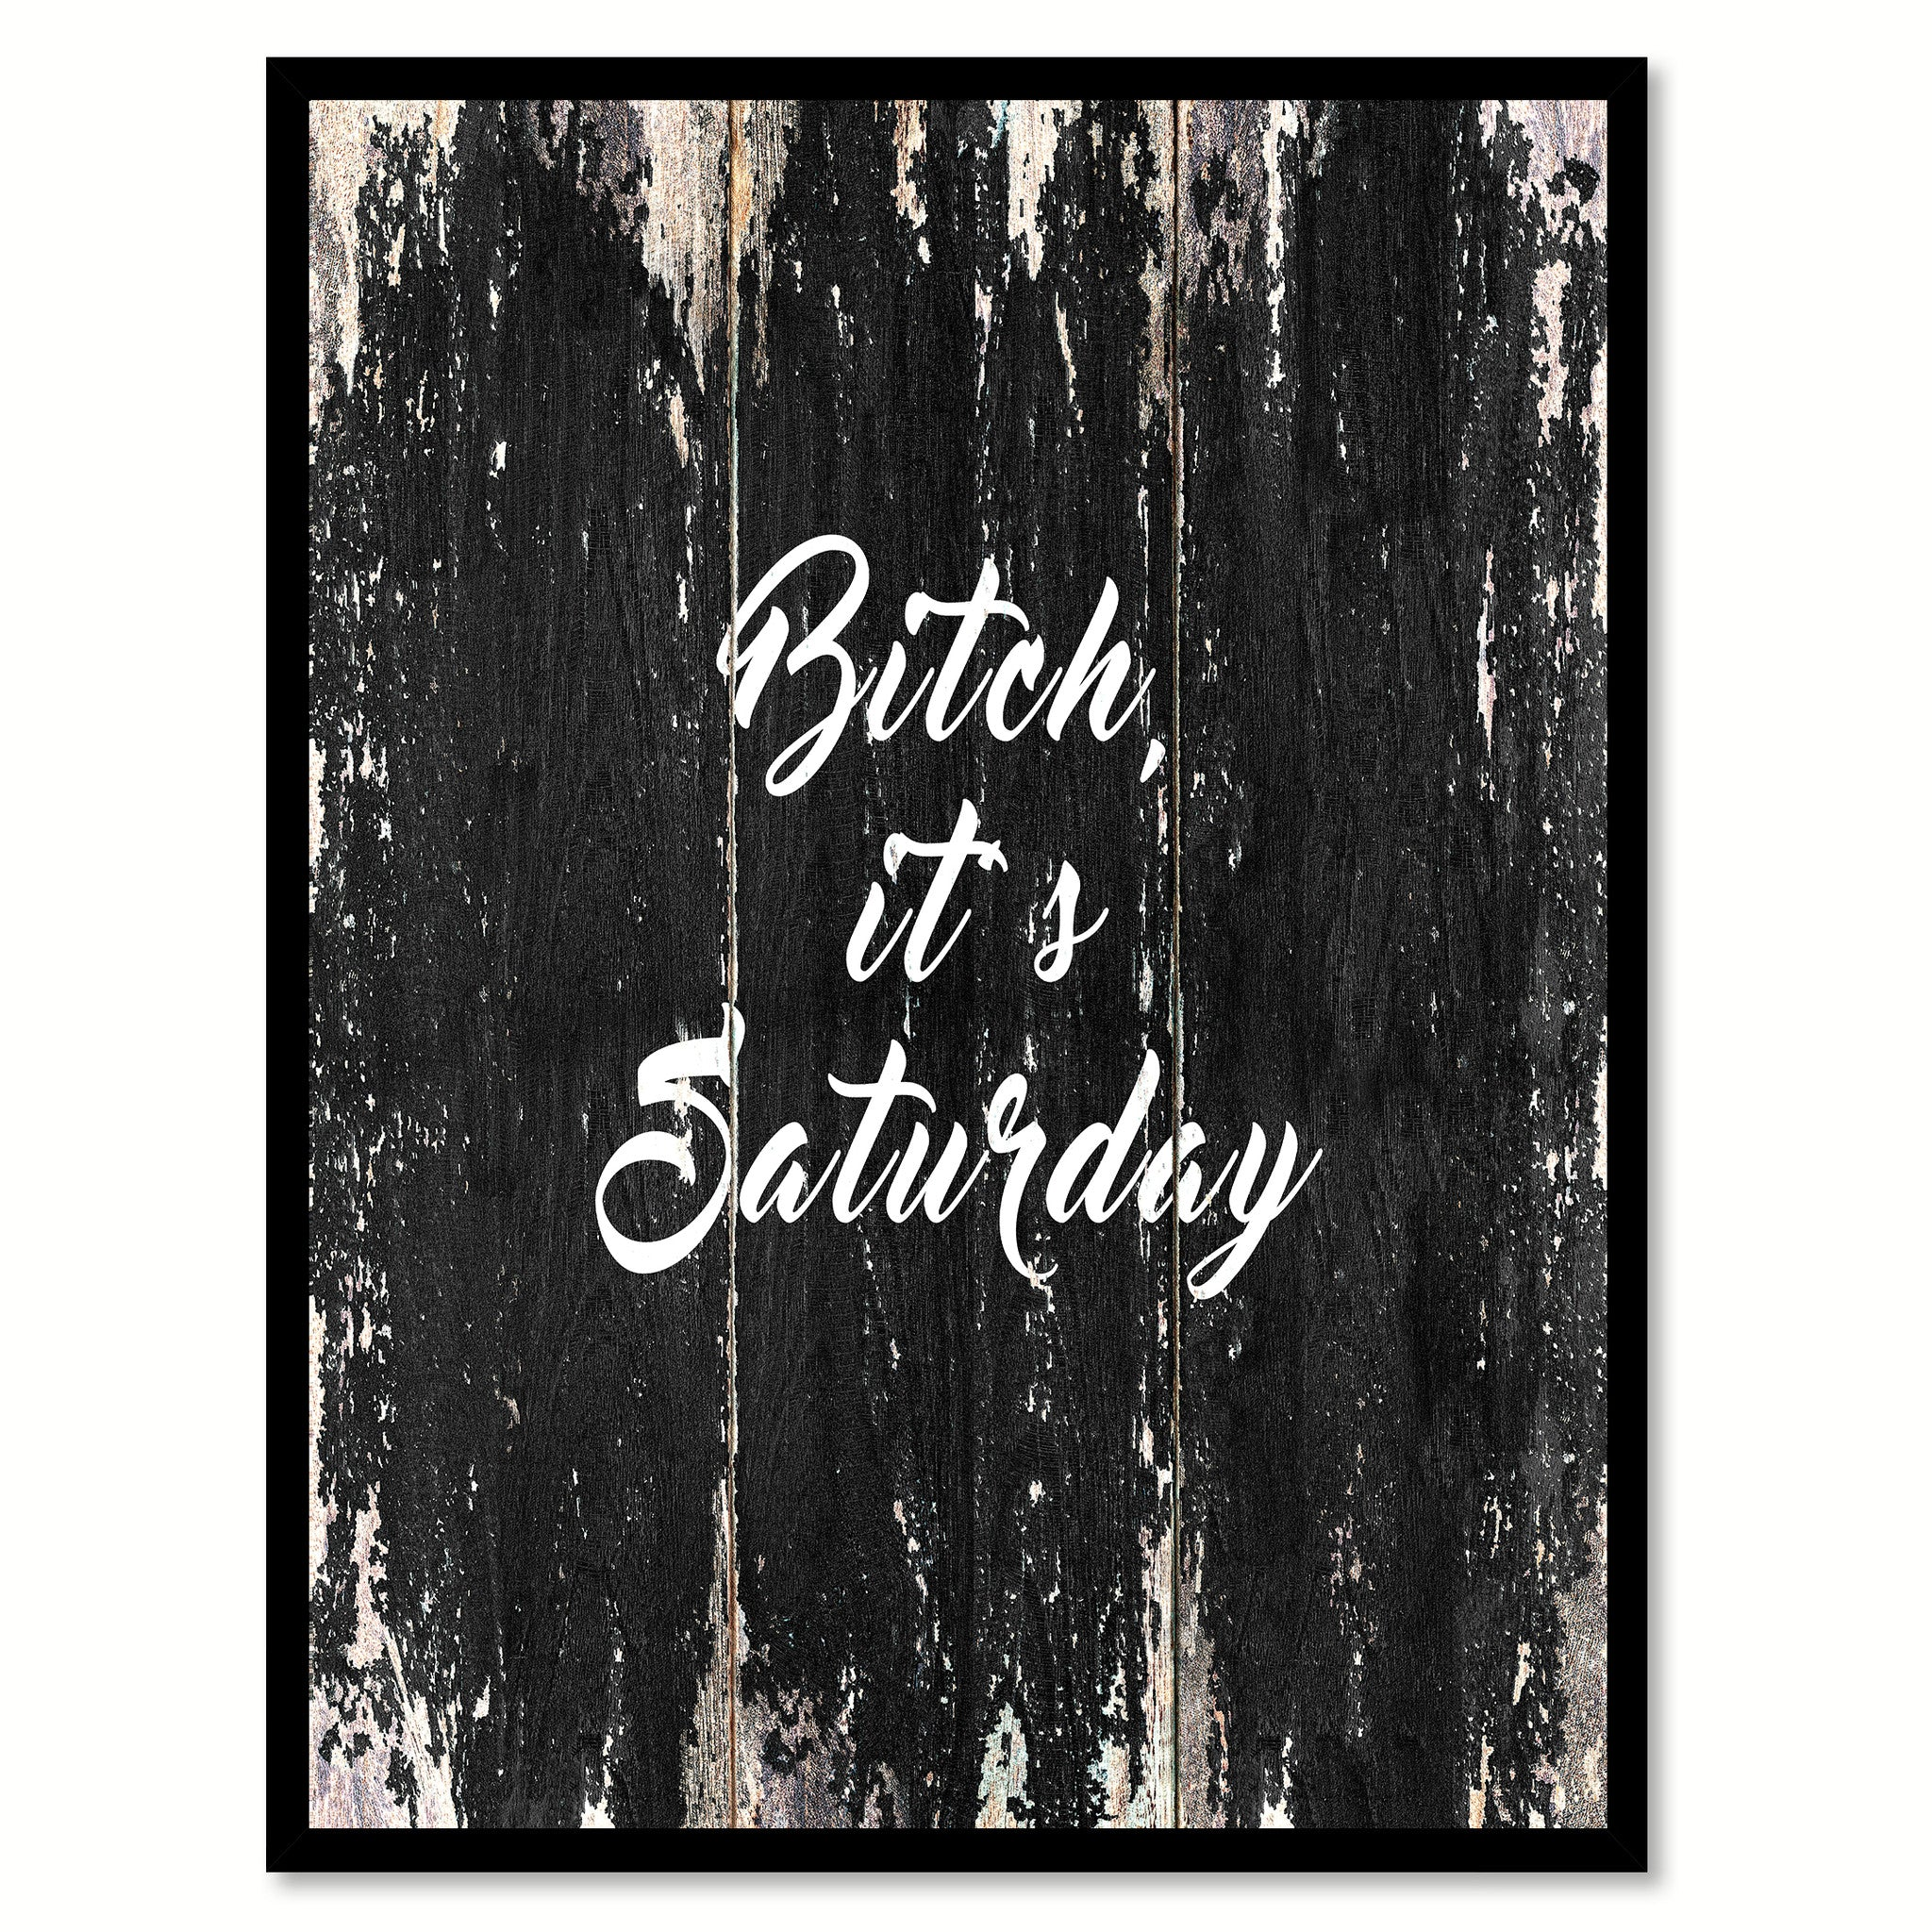 B?tch, it's Saturday Quote Saying Canvas Print with Picture Frame Home Decor Wall Art